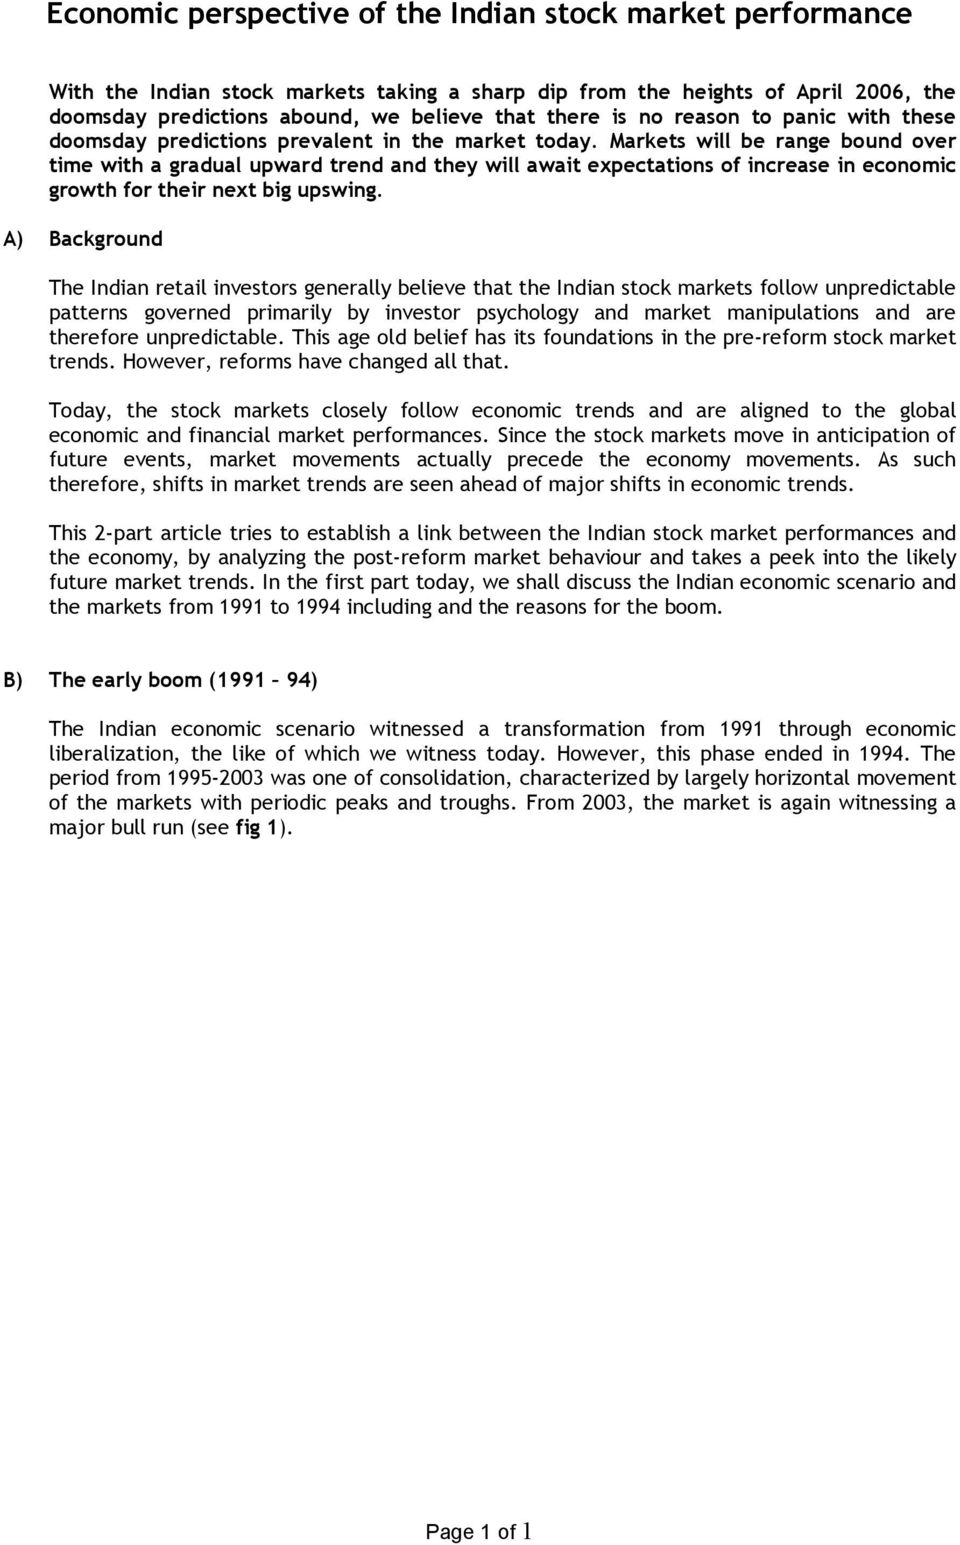 Economic perspective of the Indian stock market performance - PDF